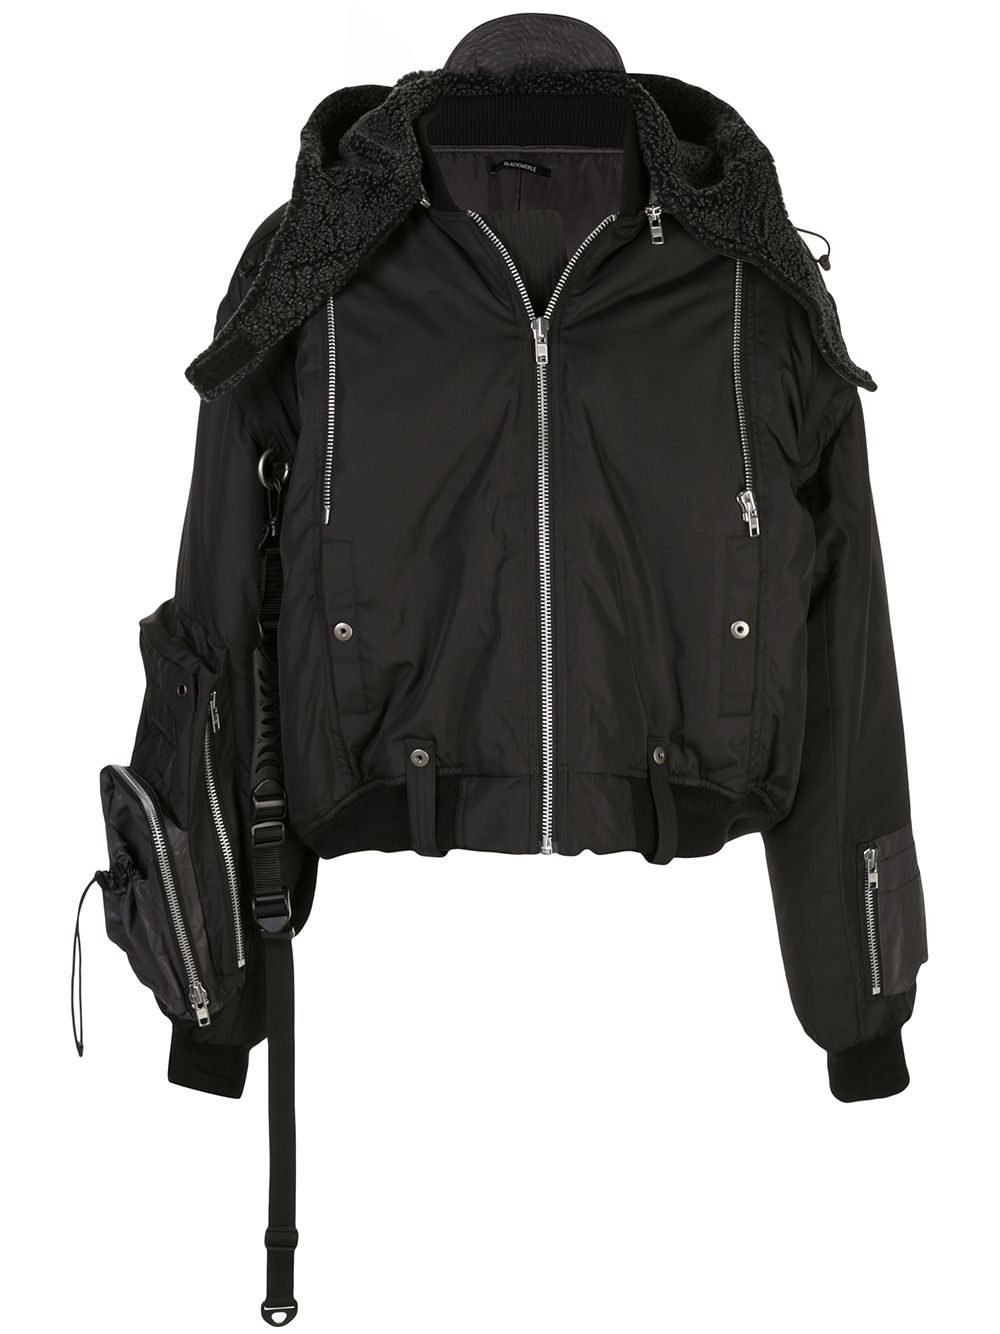 BLACKMERLE MEN TRANSFORMER MA-1 JACKET